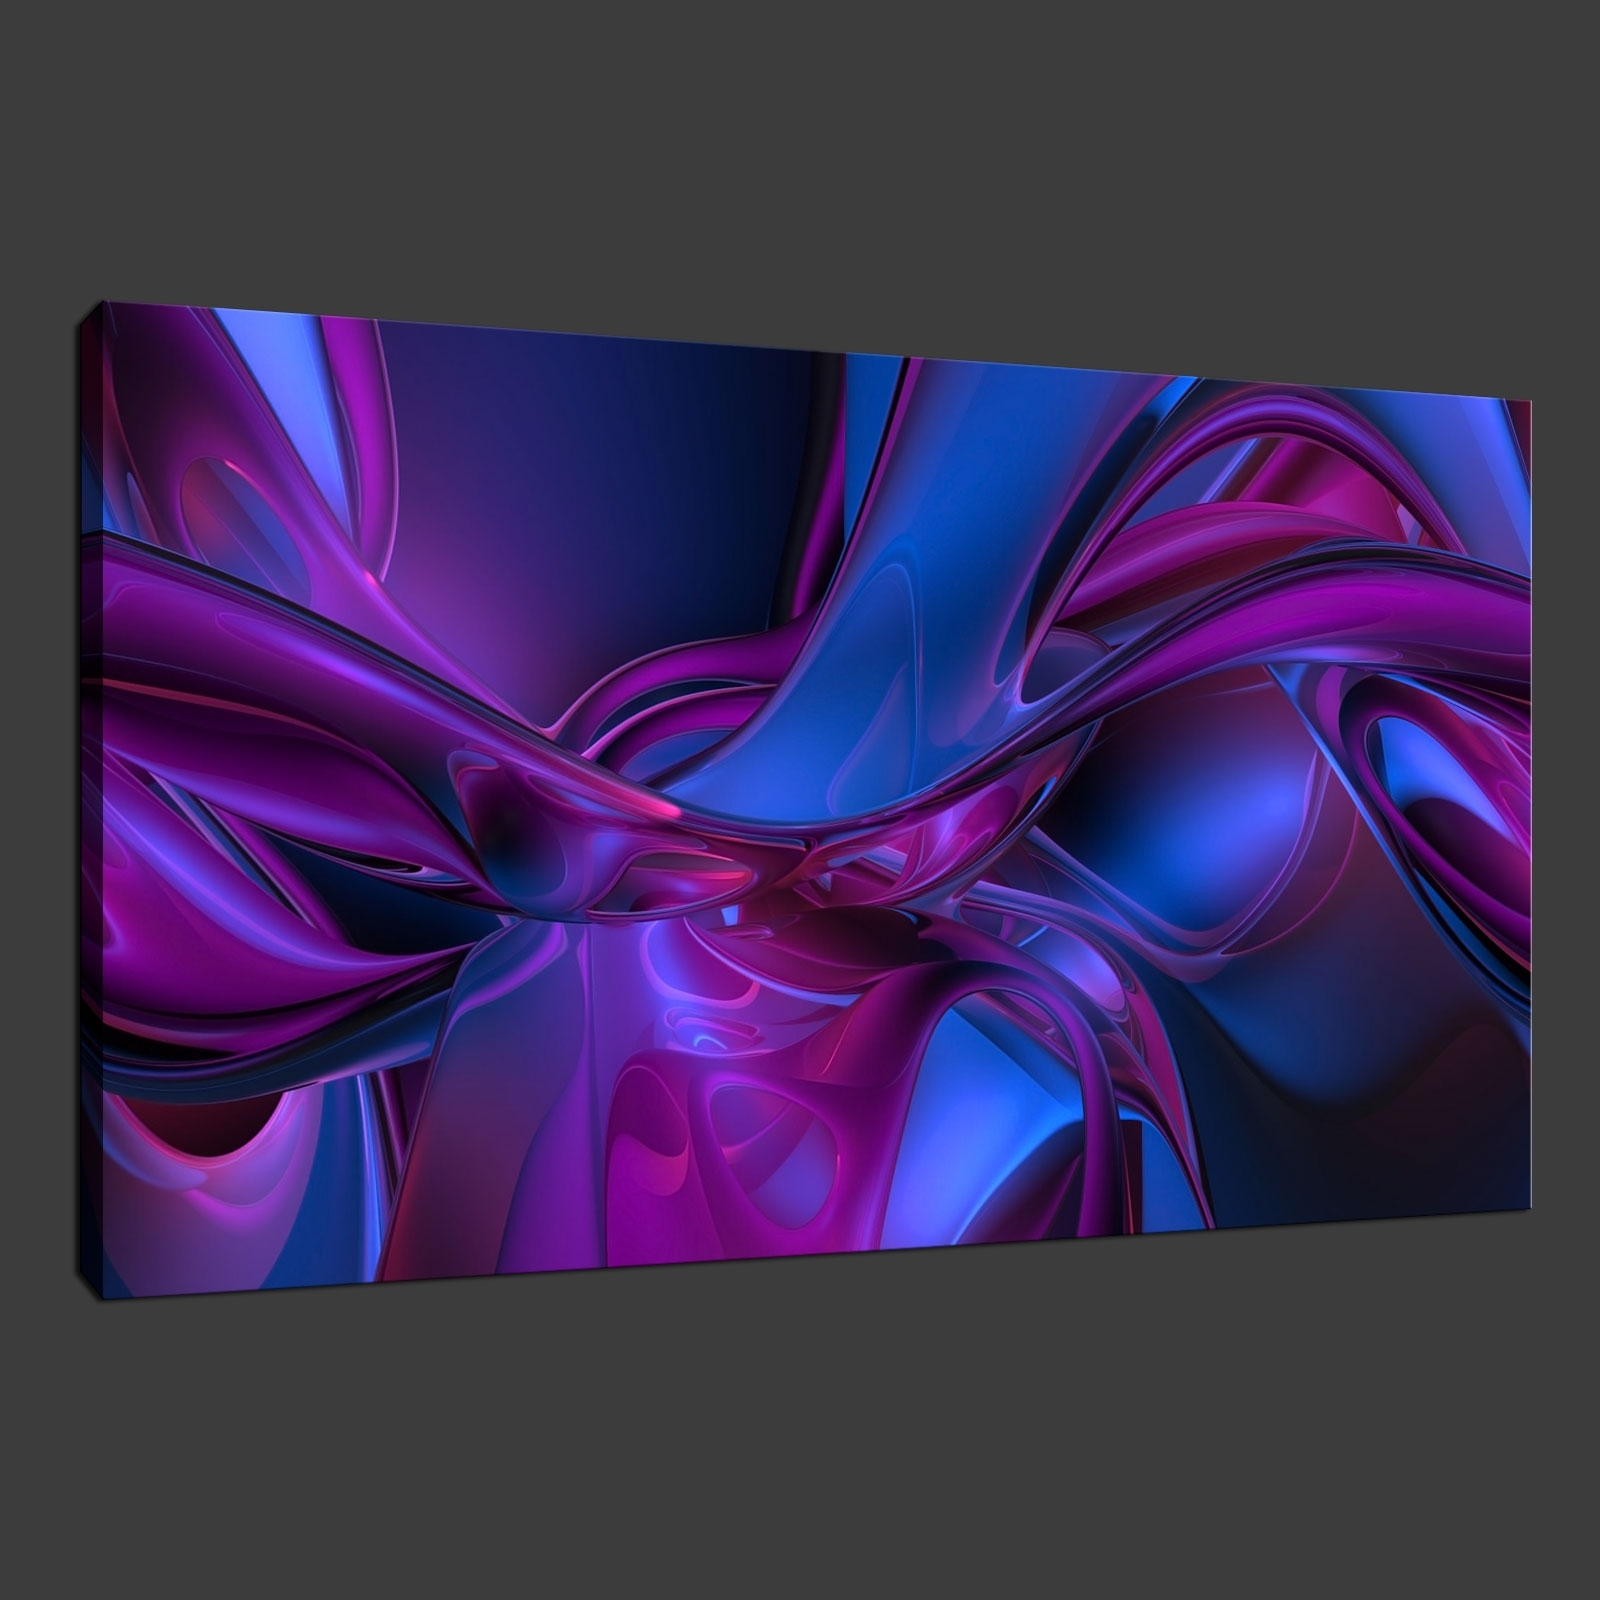 Purple Wall Art Intended For 2017 Purple And Blue Wall Art – Elitflat (View 12 of 15)